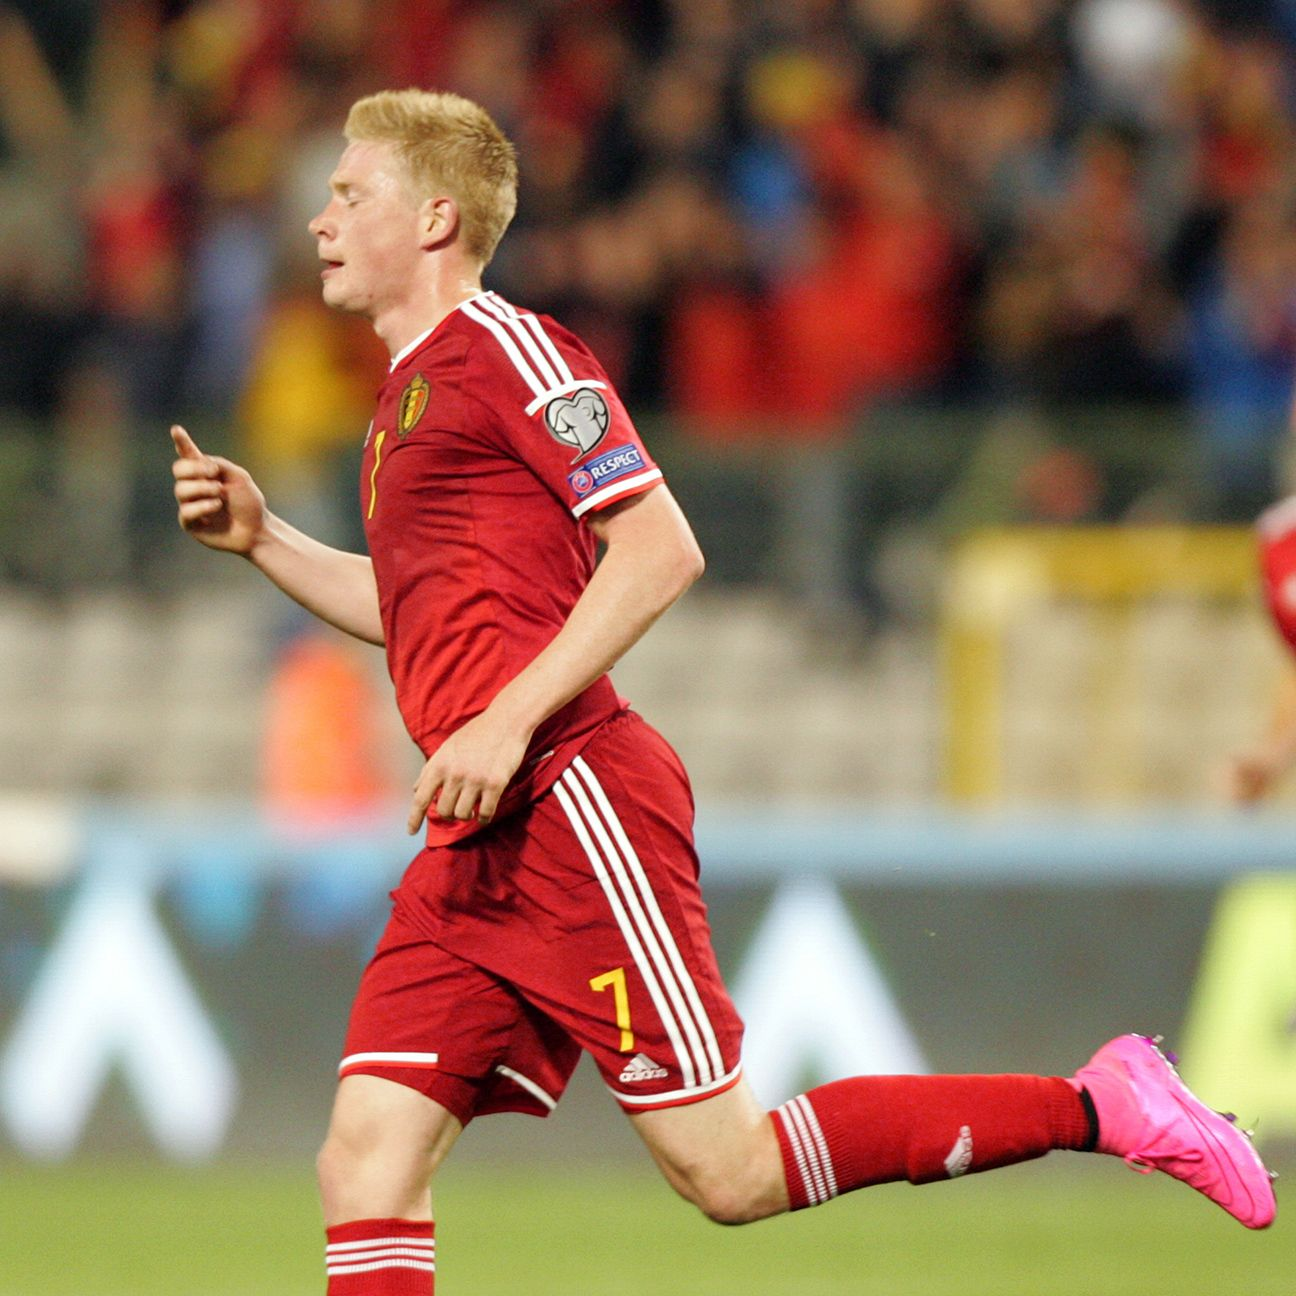 After a slow start, Kevin De Bruyne and Belgium's quality proved to be too much for Bosnia-Herzegovina.